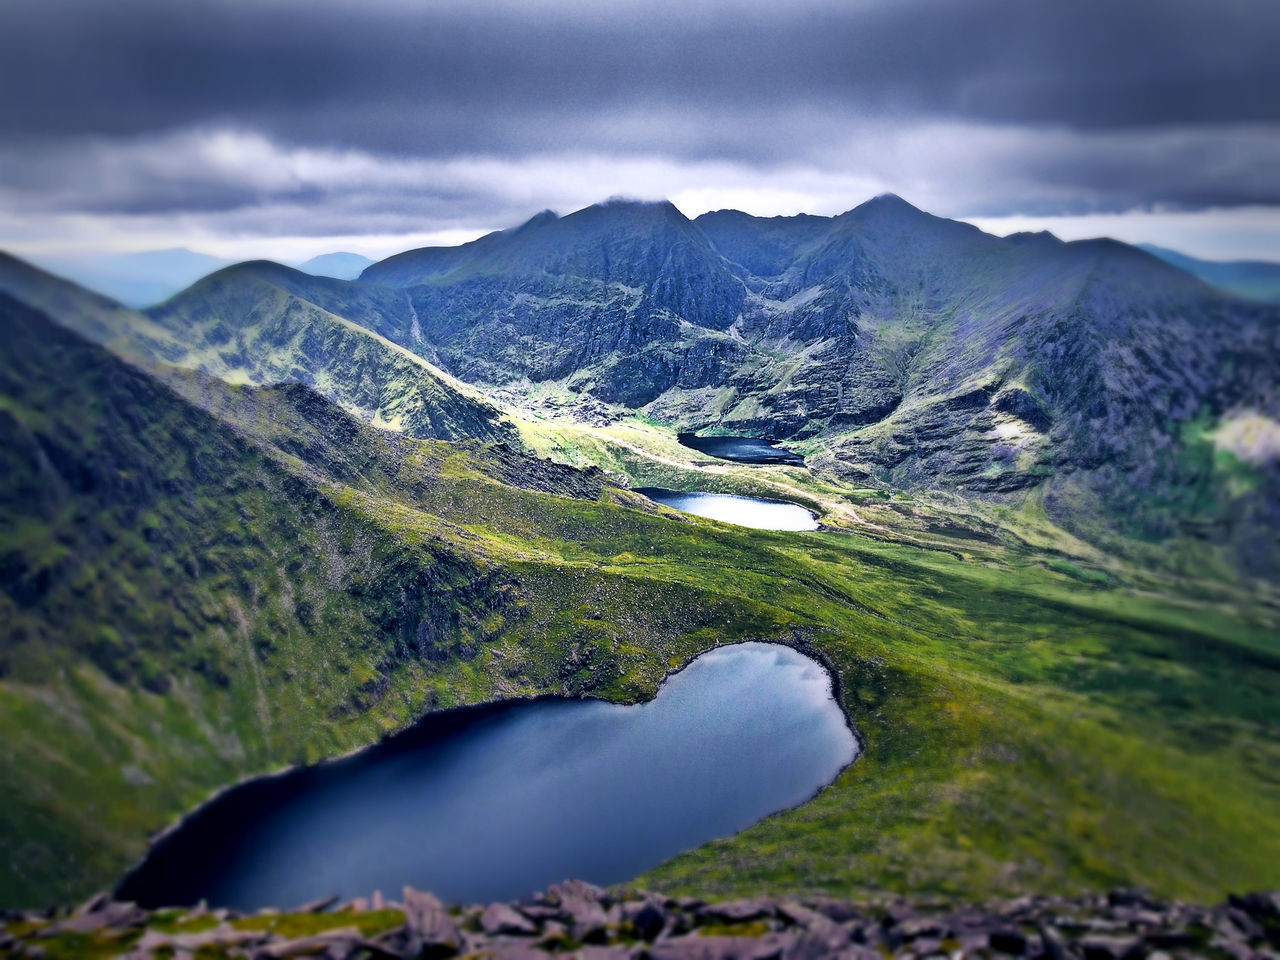 Flashback to Summer 2016 Beauty In Nature Carrauntoohil Hag's Glen Lough Callee Lough Gouragh Lough Cummeenapeasta Cloud - Sky Ireland Lakeshore Landscape Lough Macgillycuddy's Reeks Mountain Mountain Range Nature Outdoors Scenics Sky Tranquil Scene Tranquility Betterlandscapes Miles Away